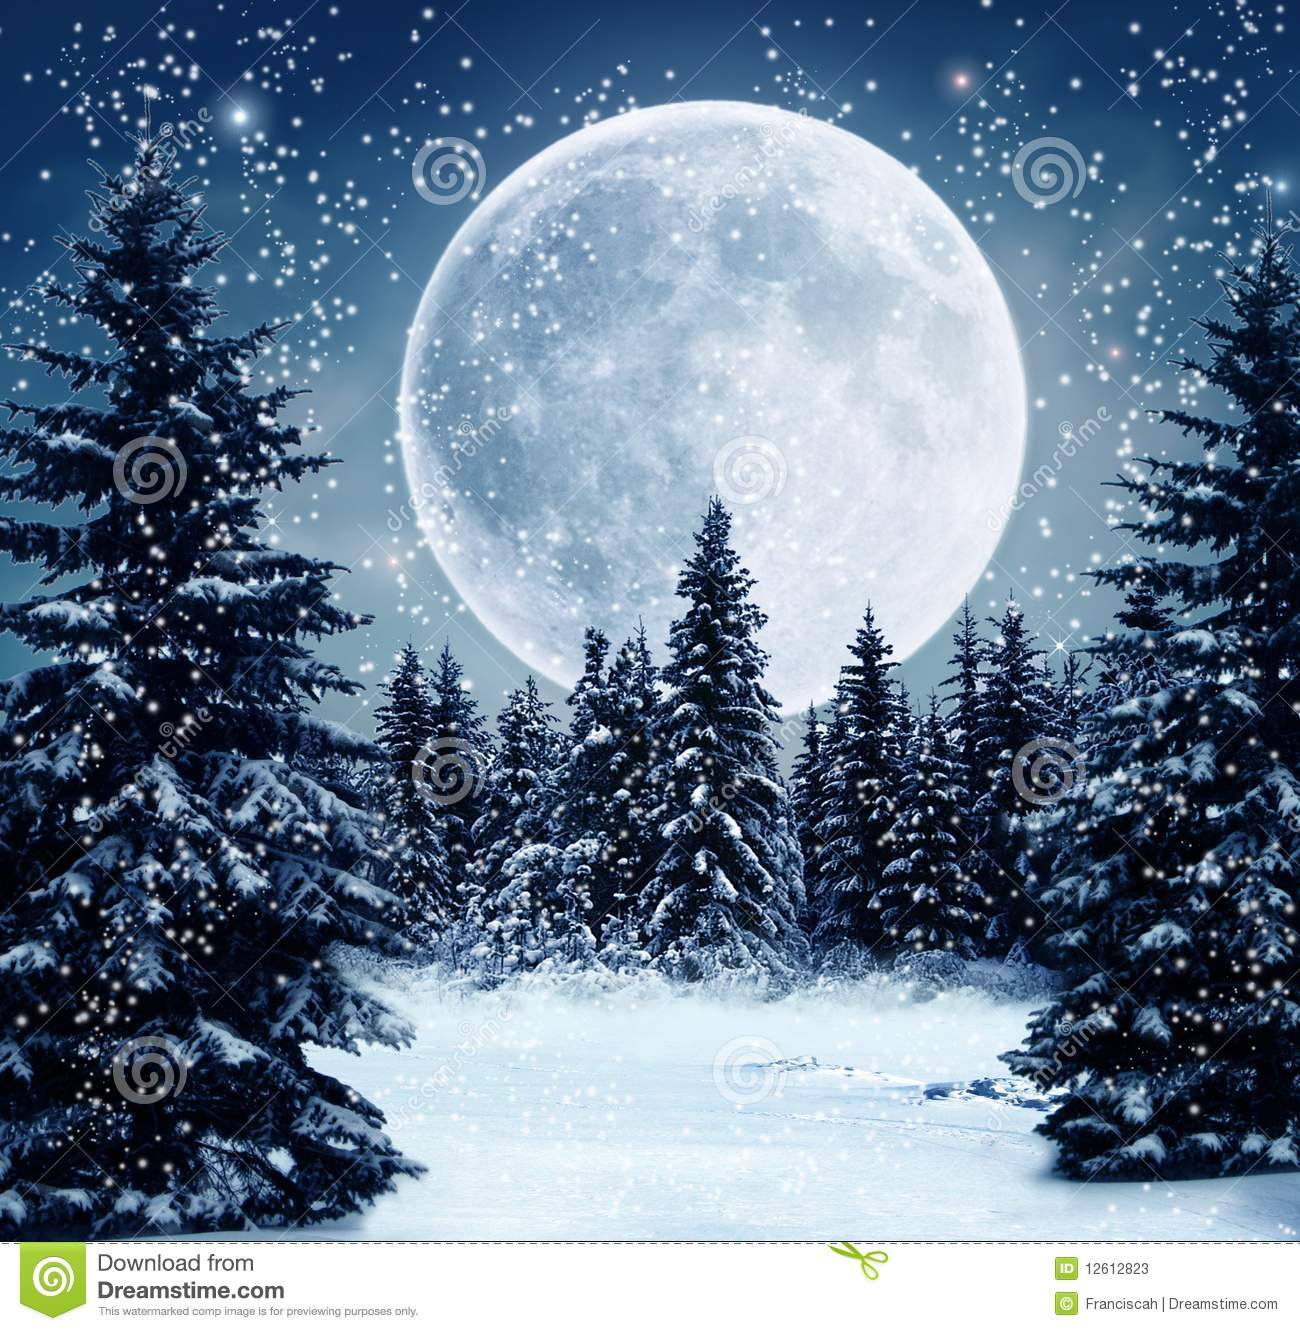 Winter scene stock illustration. Illustration of night.